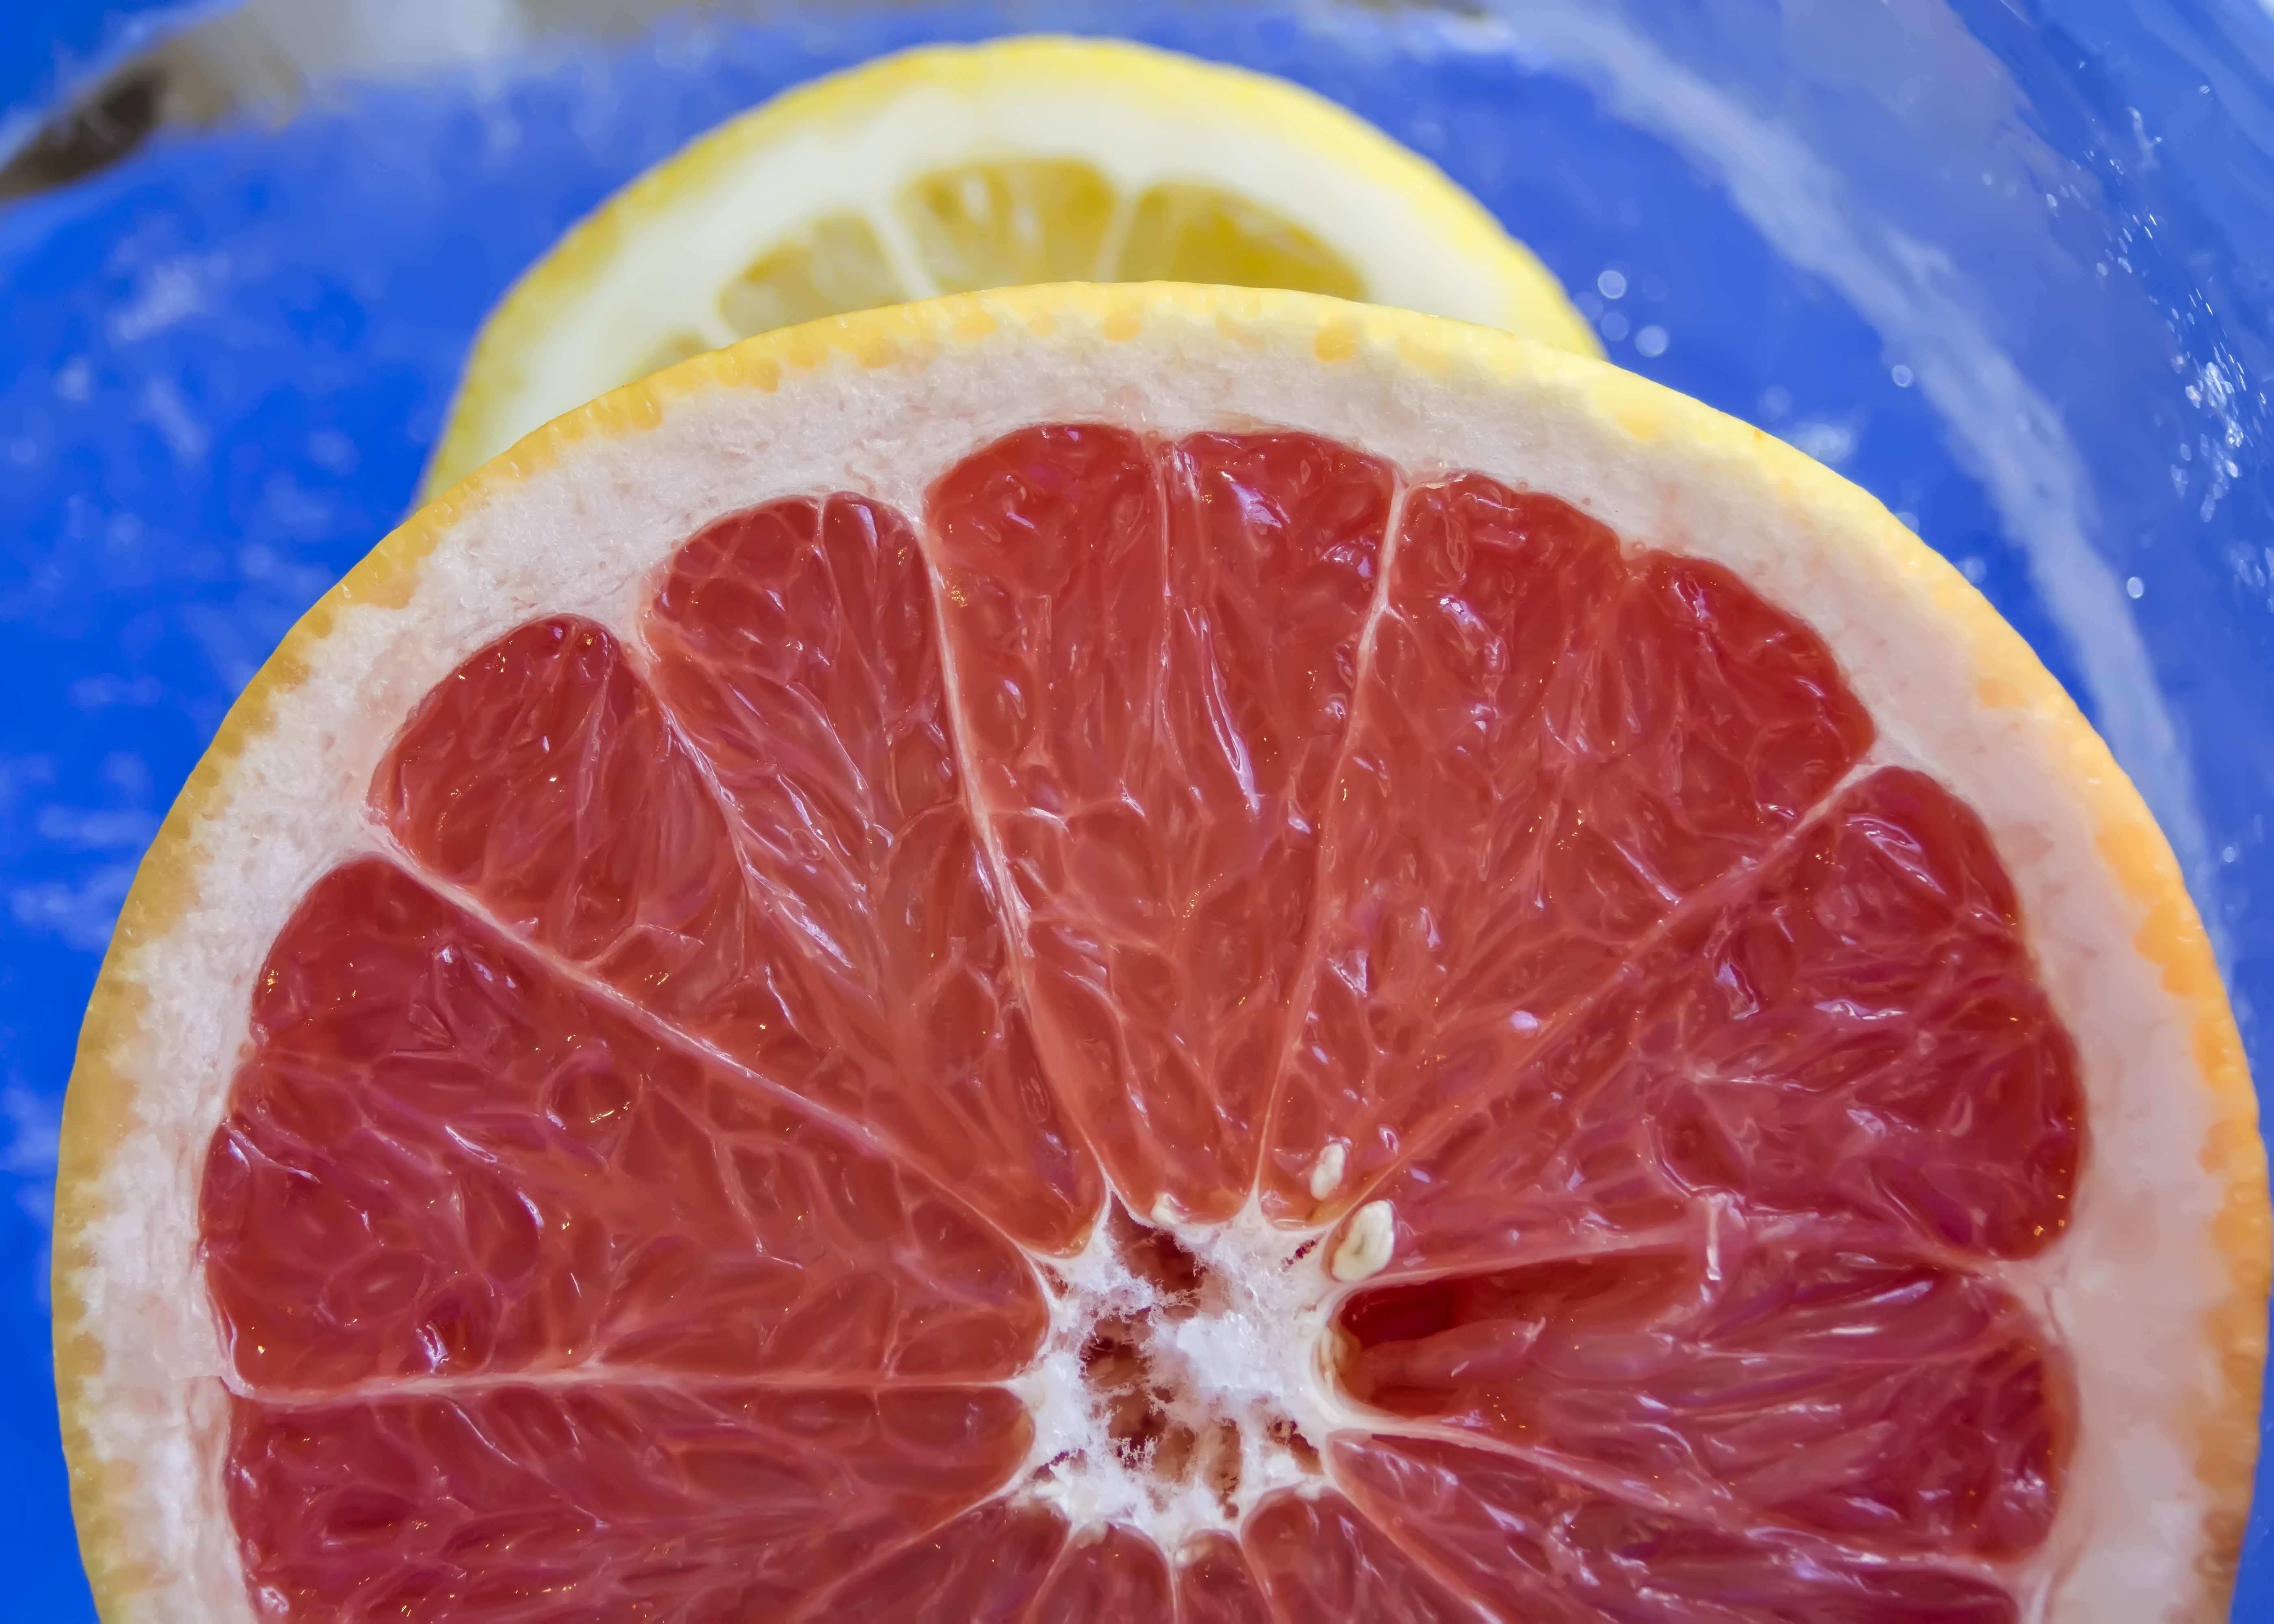 If you're going to be having a cocktail or two in the early New Year, add this grapefruit to your ingredient list.